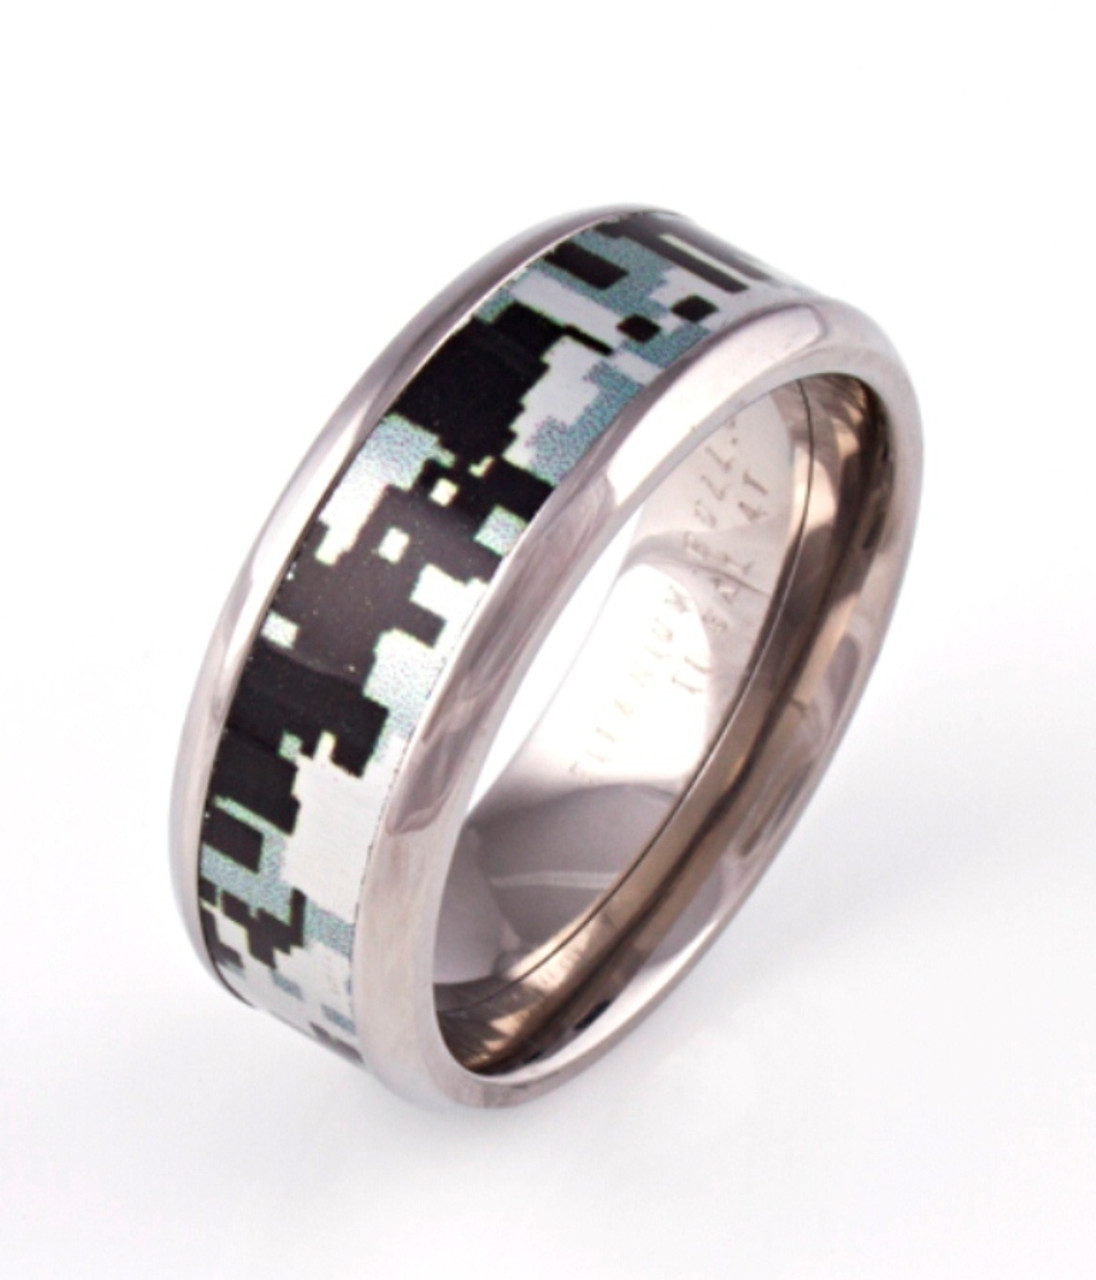 rings favorite online camo new country him outlet beautiful and on images of jewelry for best